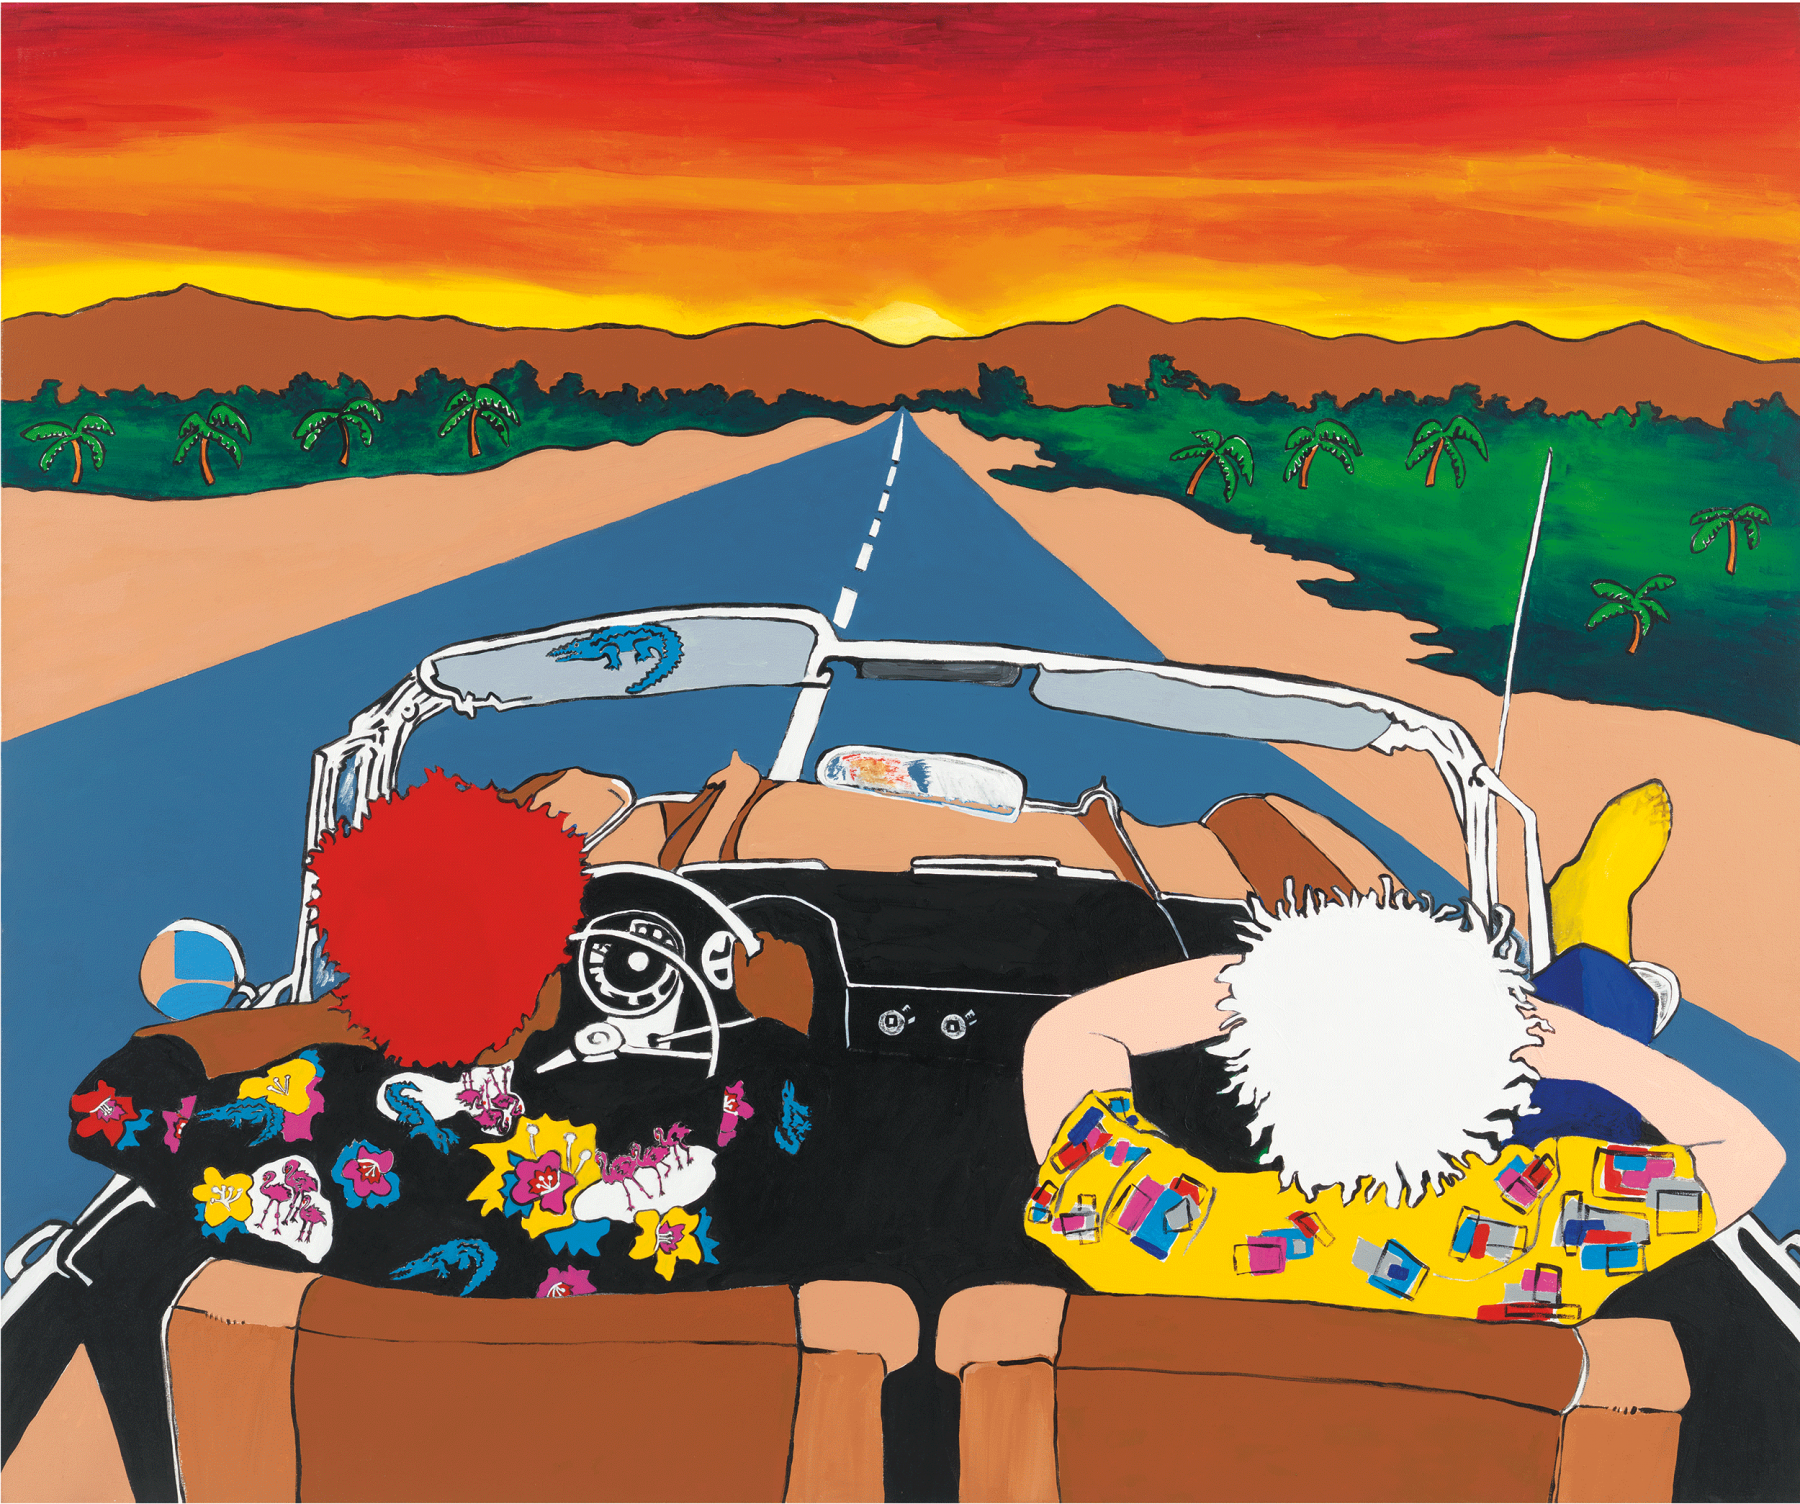 Maui Wowie (Jean-Michel and Andy Take a Trip), 1989, Acrylic and paper collage on canvas